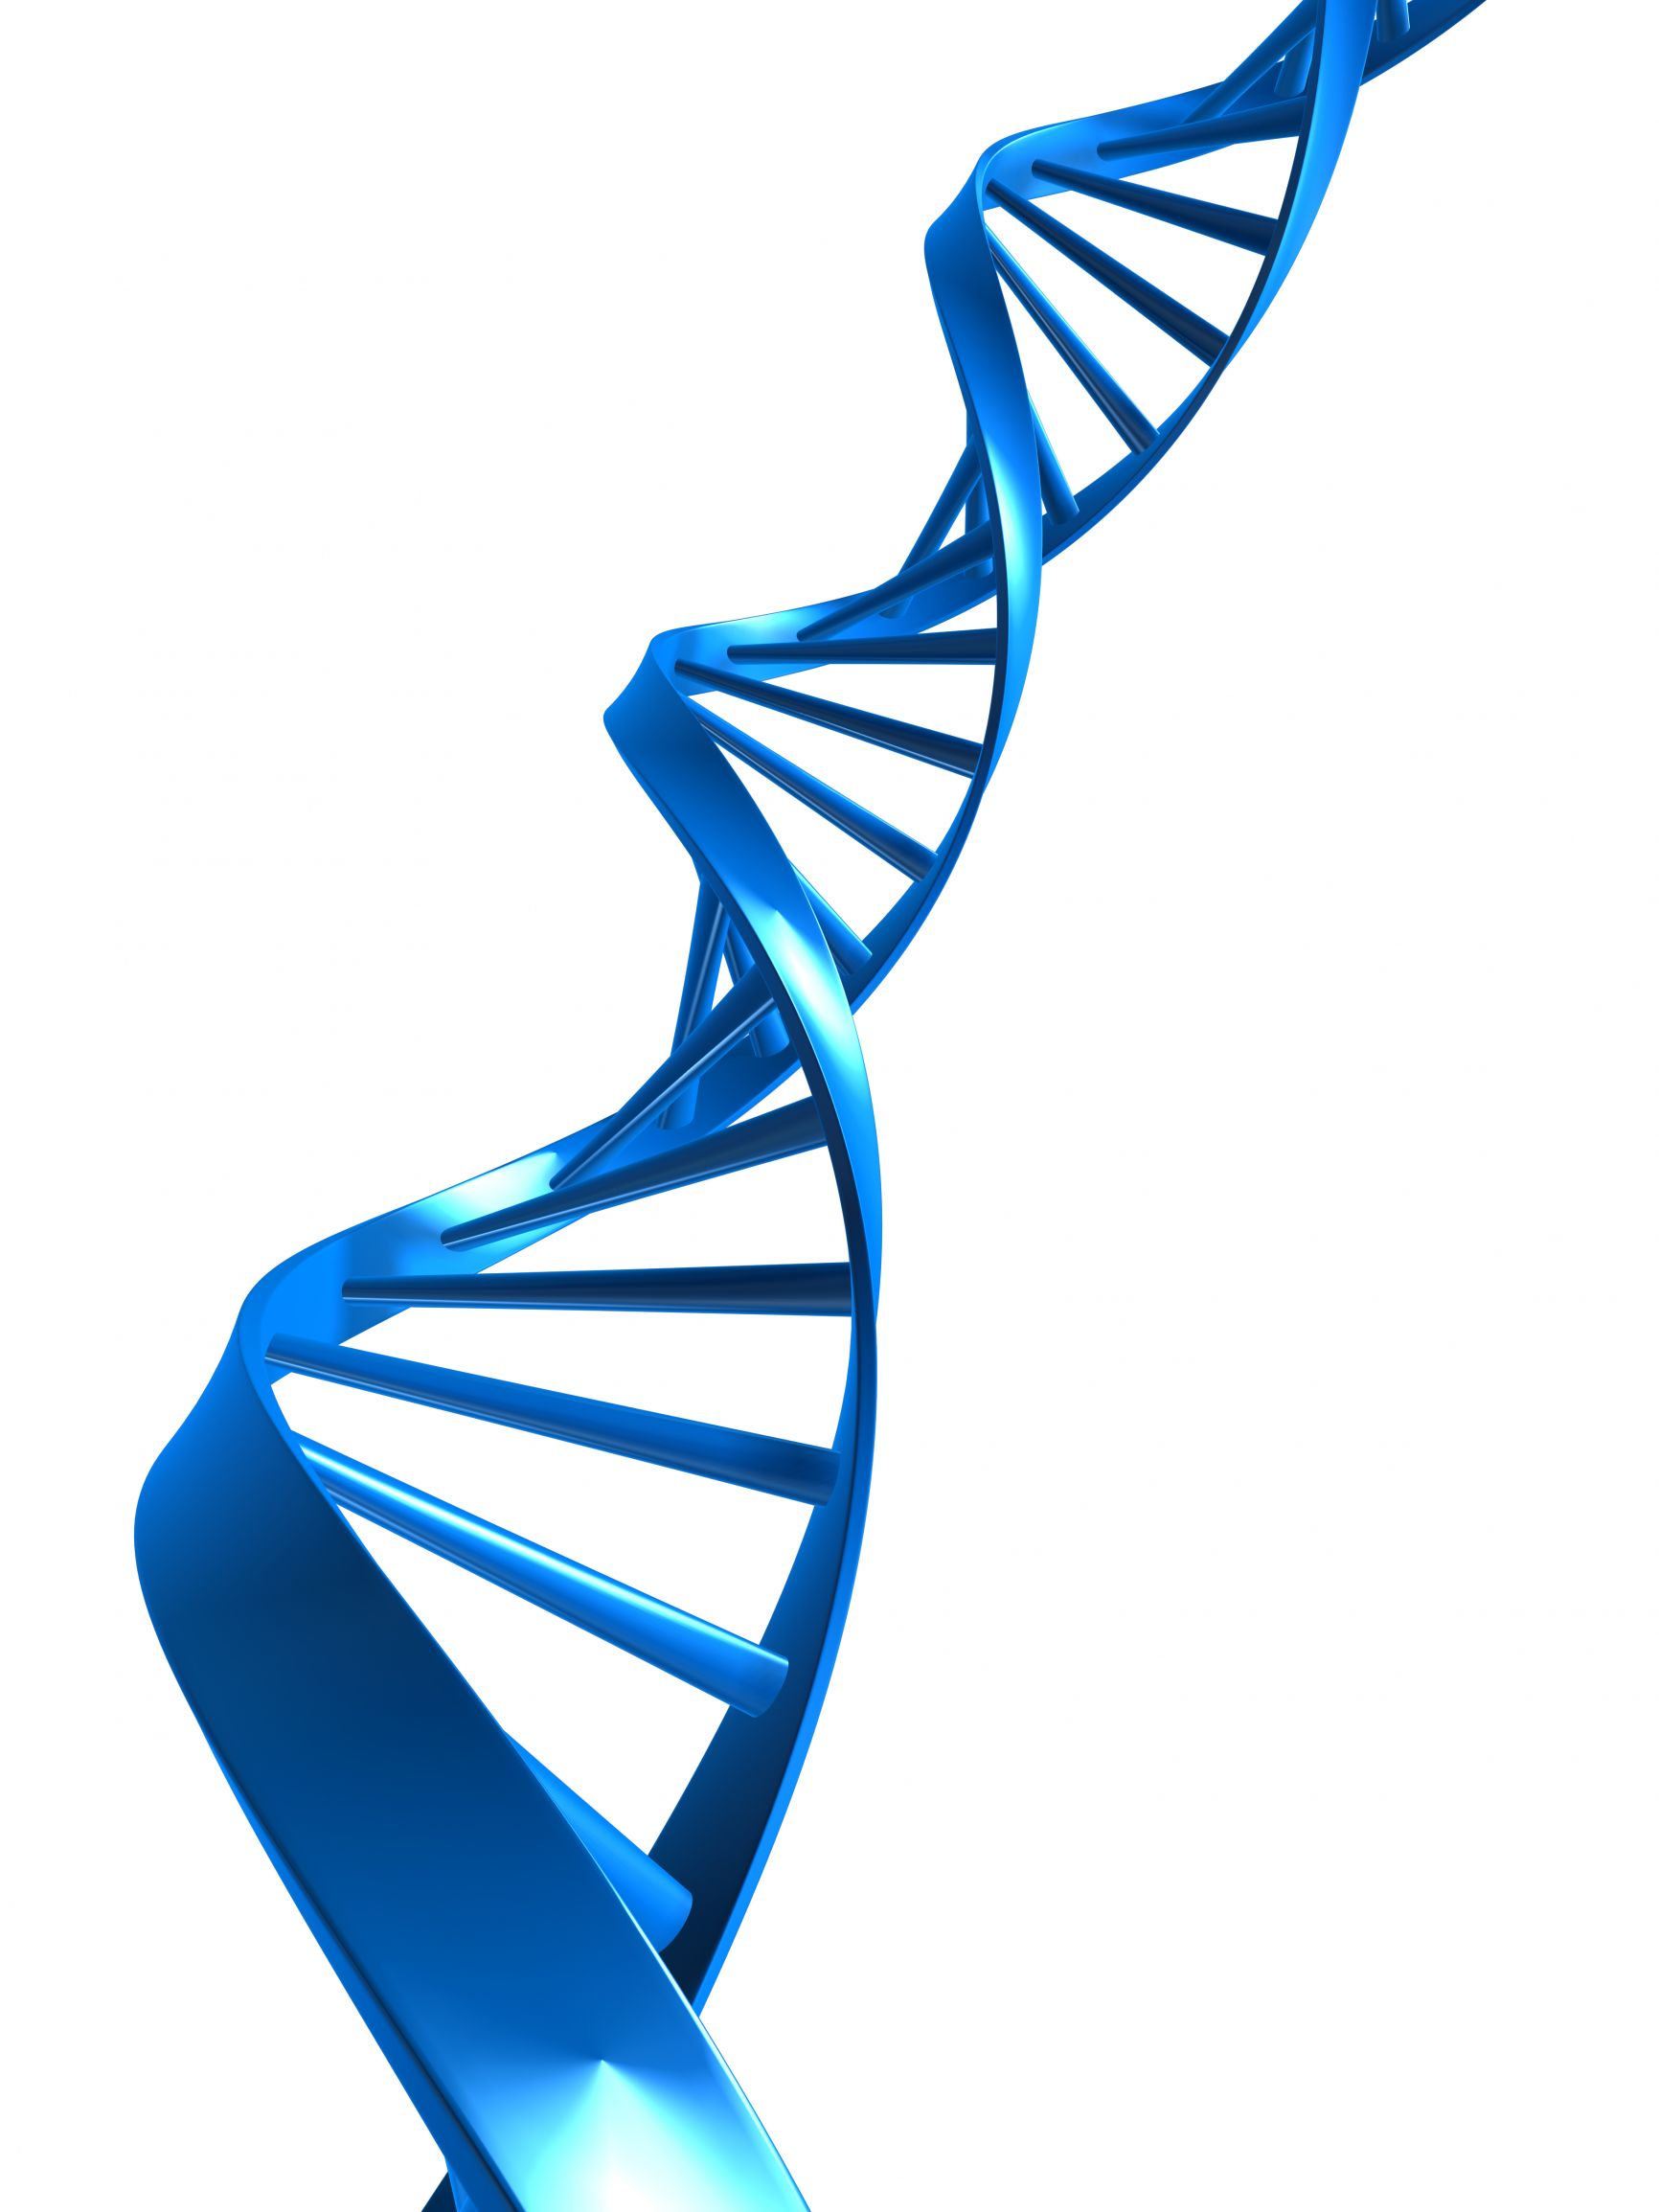 Free Dna Helix Clipart, Download Free Clip Art, Free Clip Art on.